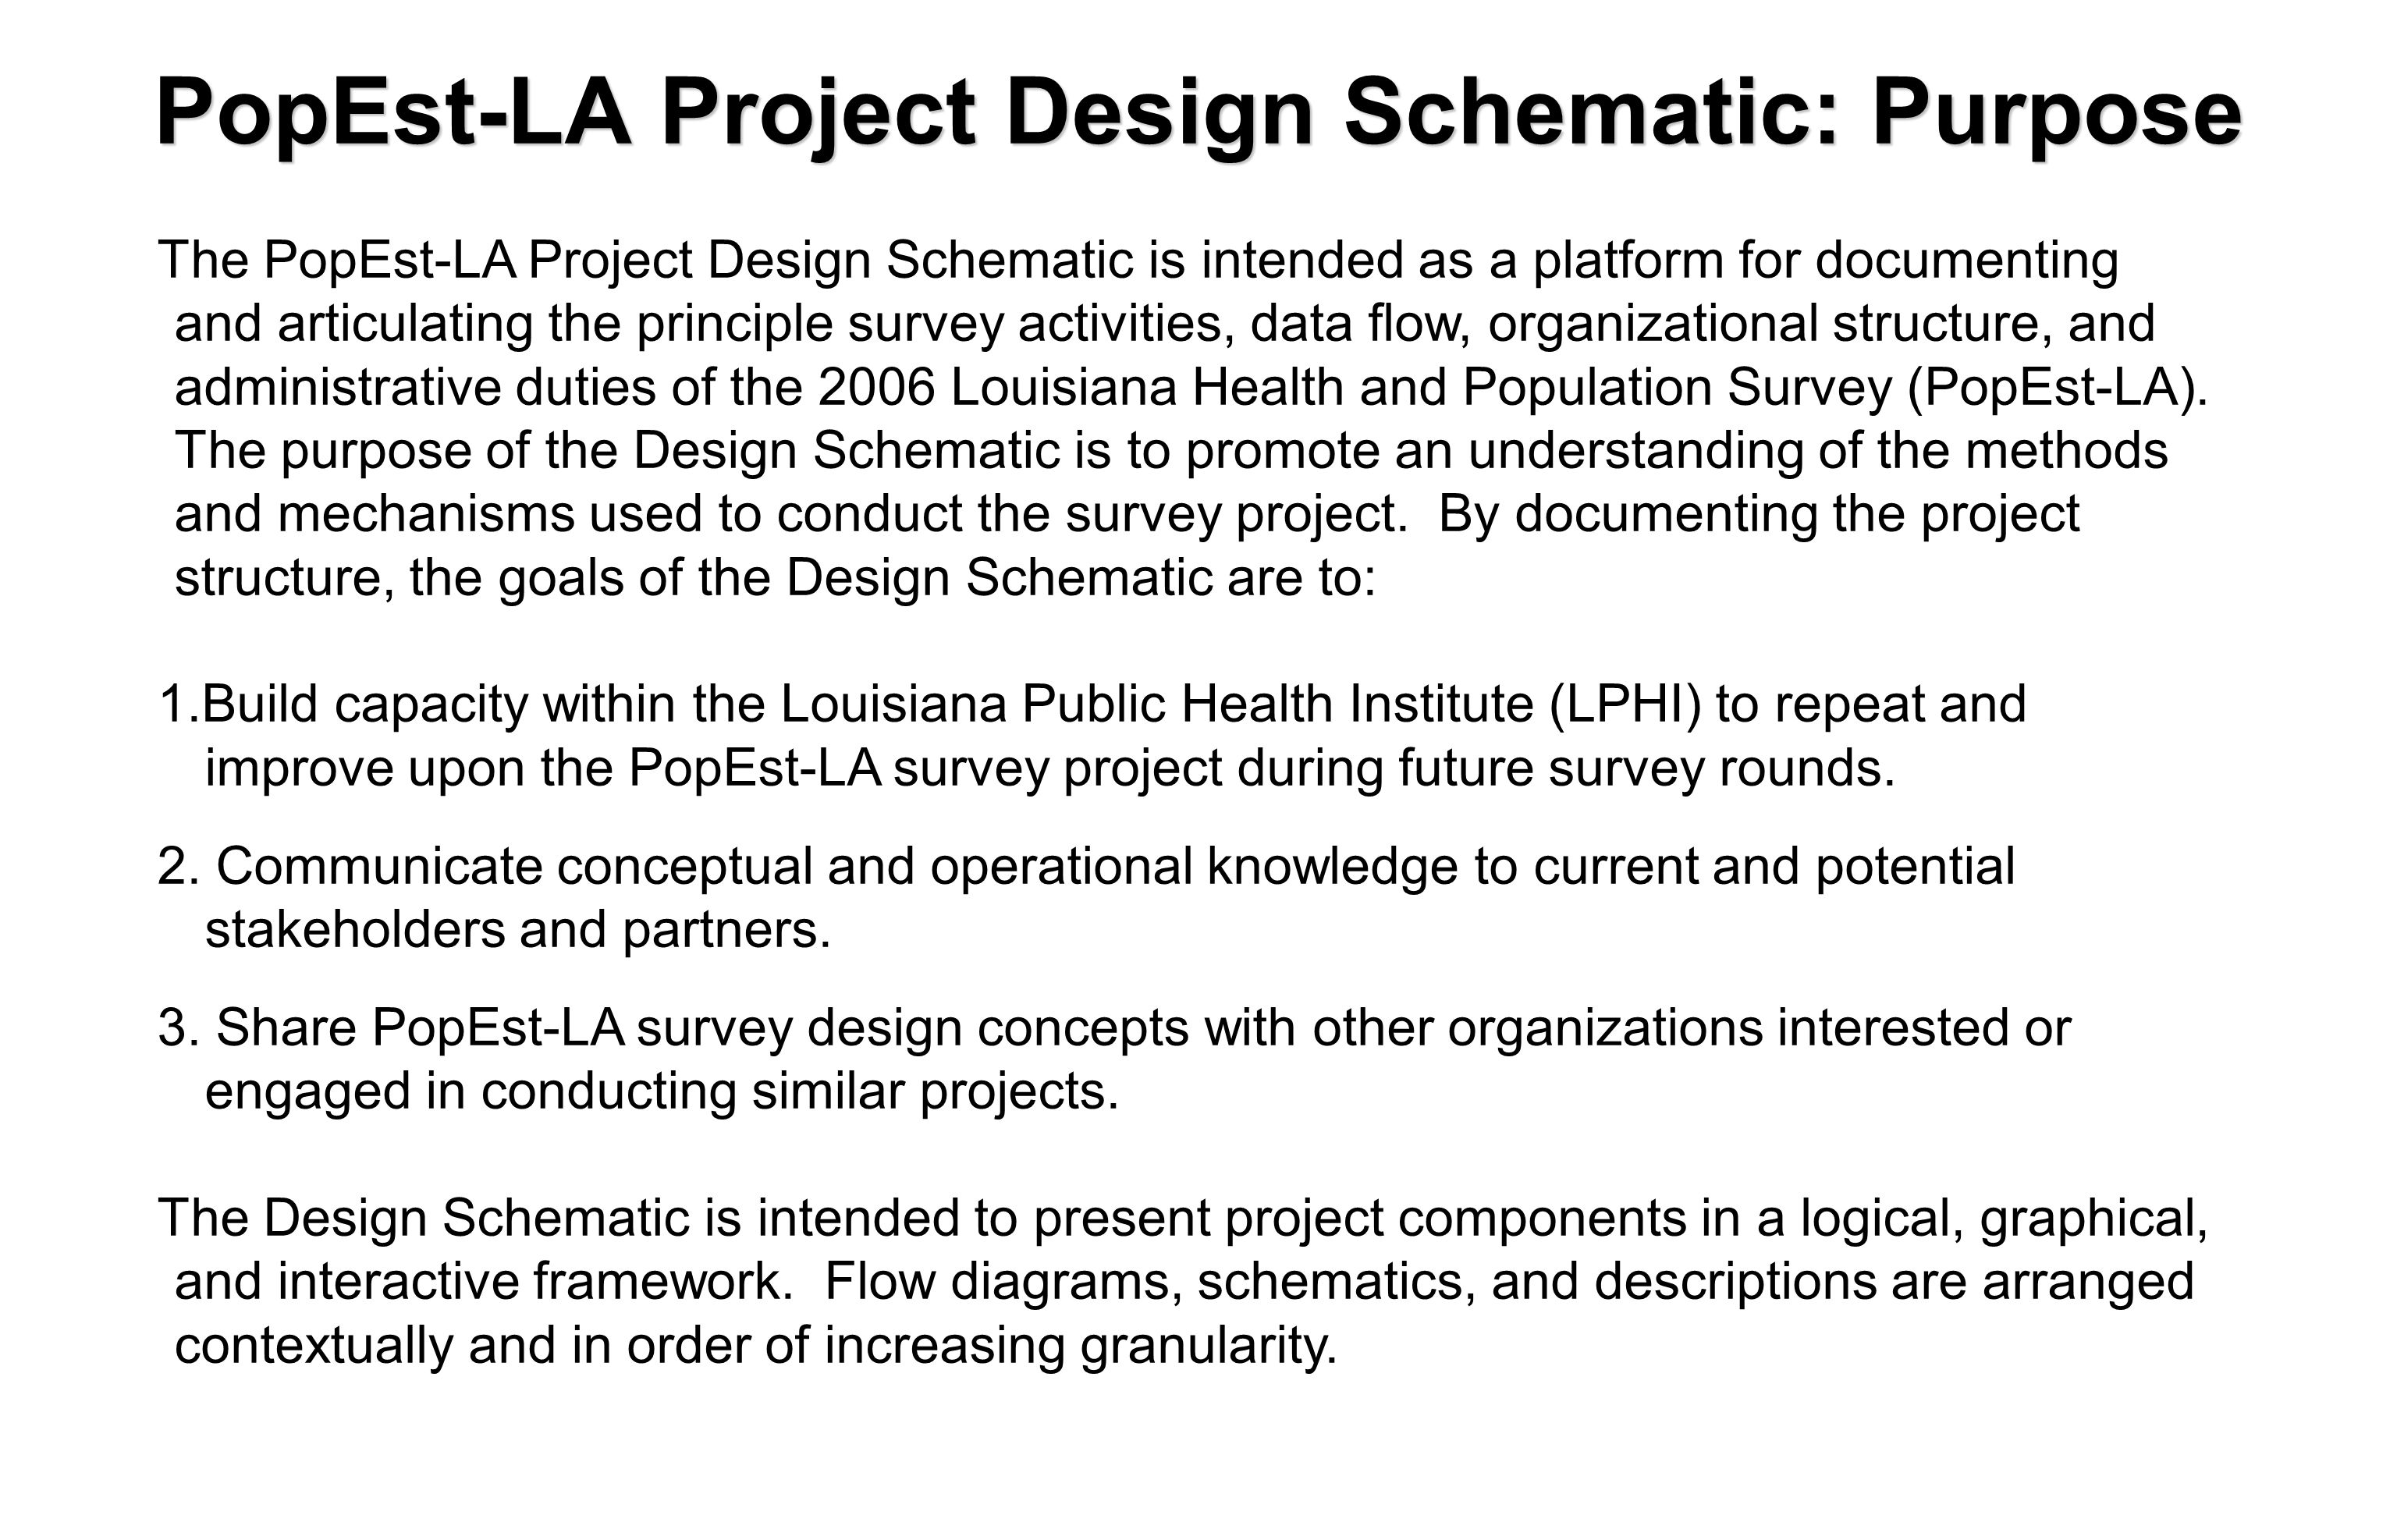 PopEst-LA Project Design Schematic: Purpose The PopEst-LA Project Design Schematic is intended as a platform for documenting and articulating the principle survey activities, data flow, organizational structure, and administrative duties of the 2006 Louisiana Health and Population Survey (PopEst-LA).